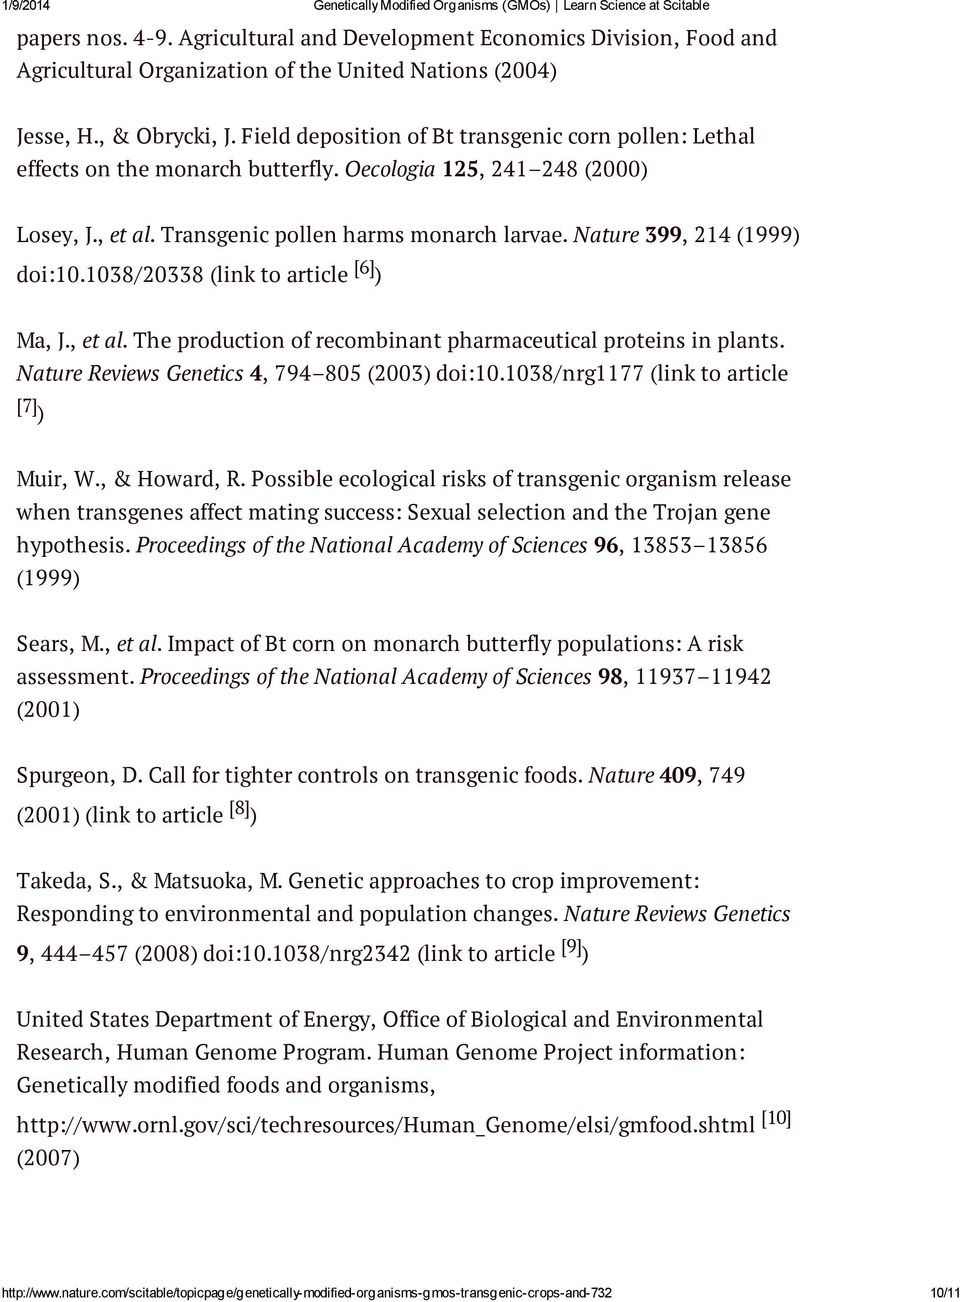 Nature 399, 214 (1999) doi:10.1038/20338 (link to article [6] ) Ma, J., et al. The production of recombinant pharmaceutical proteins in plants. Nature Reviews Genetics 4, 794 805 (2003) doi:10.